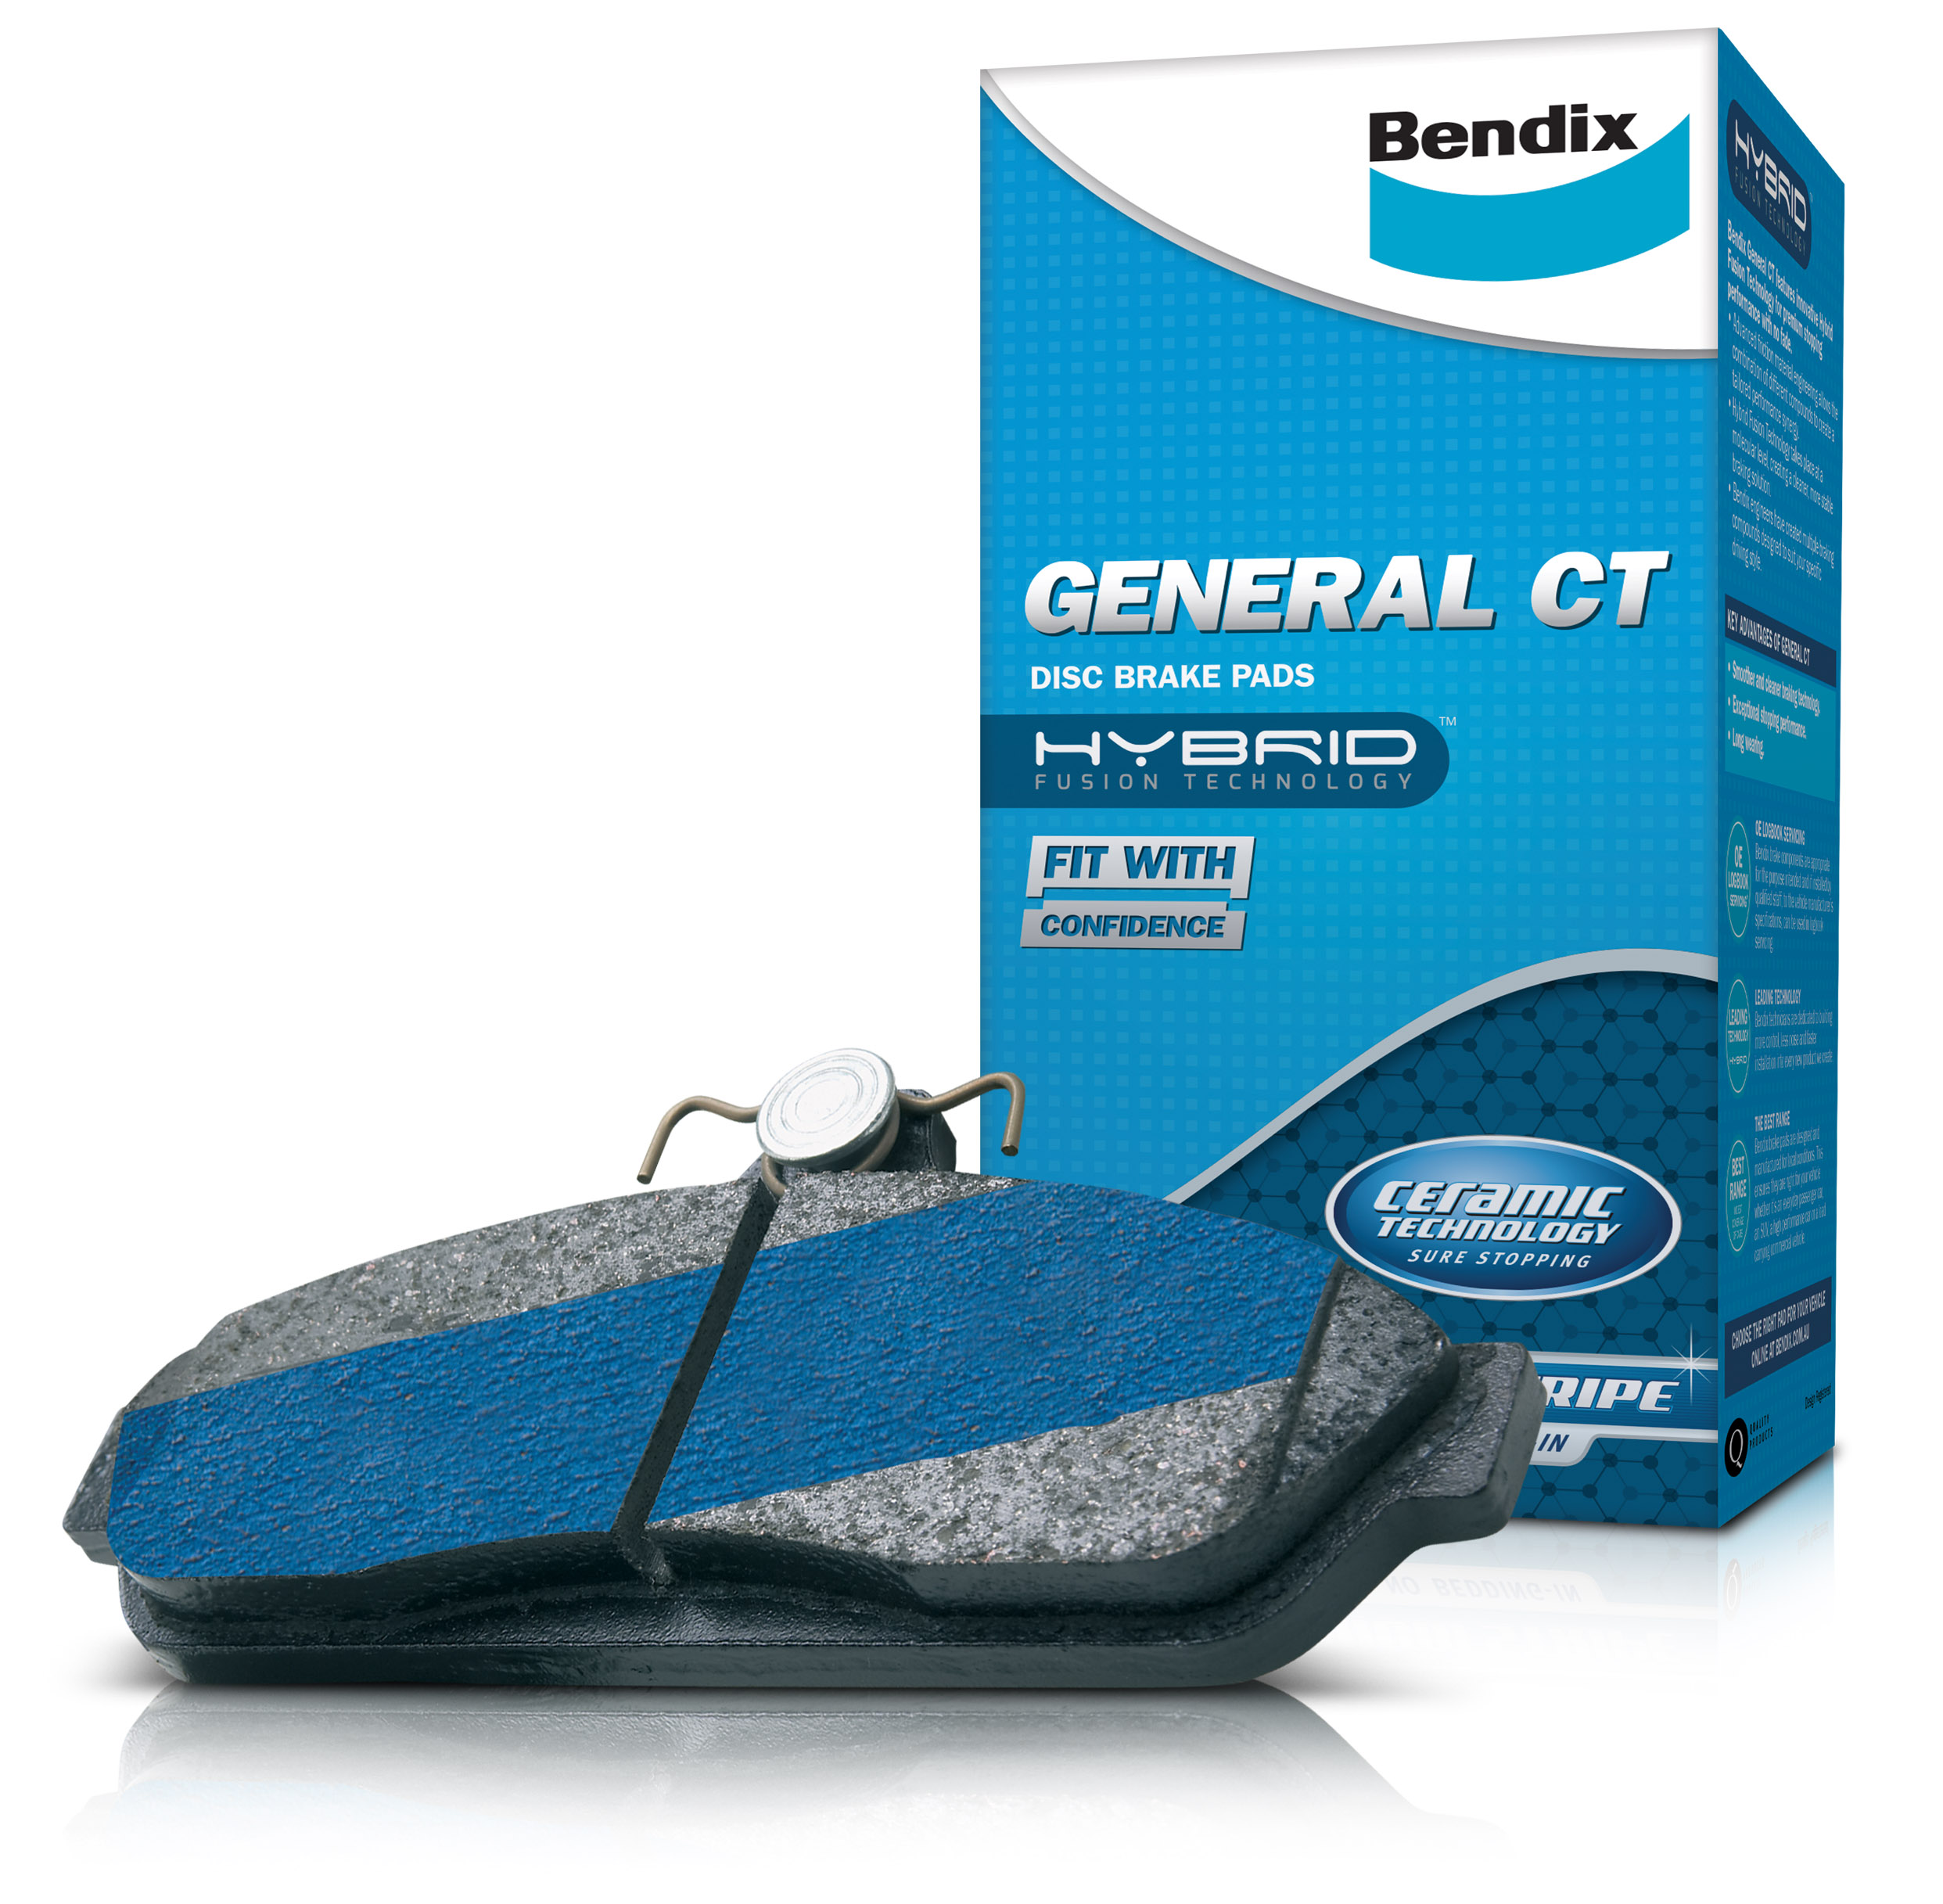 Bendix General CT Disc Pads image 2